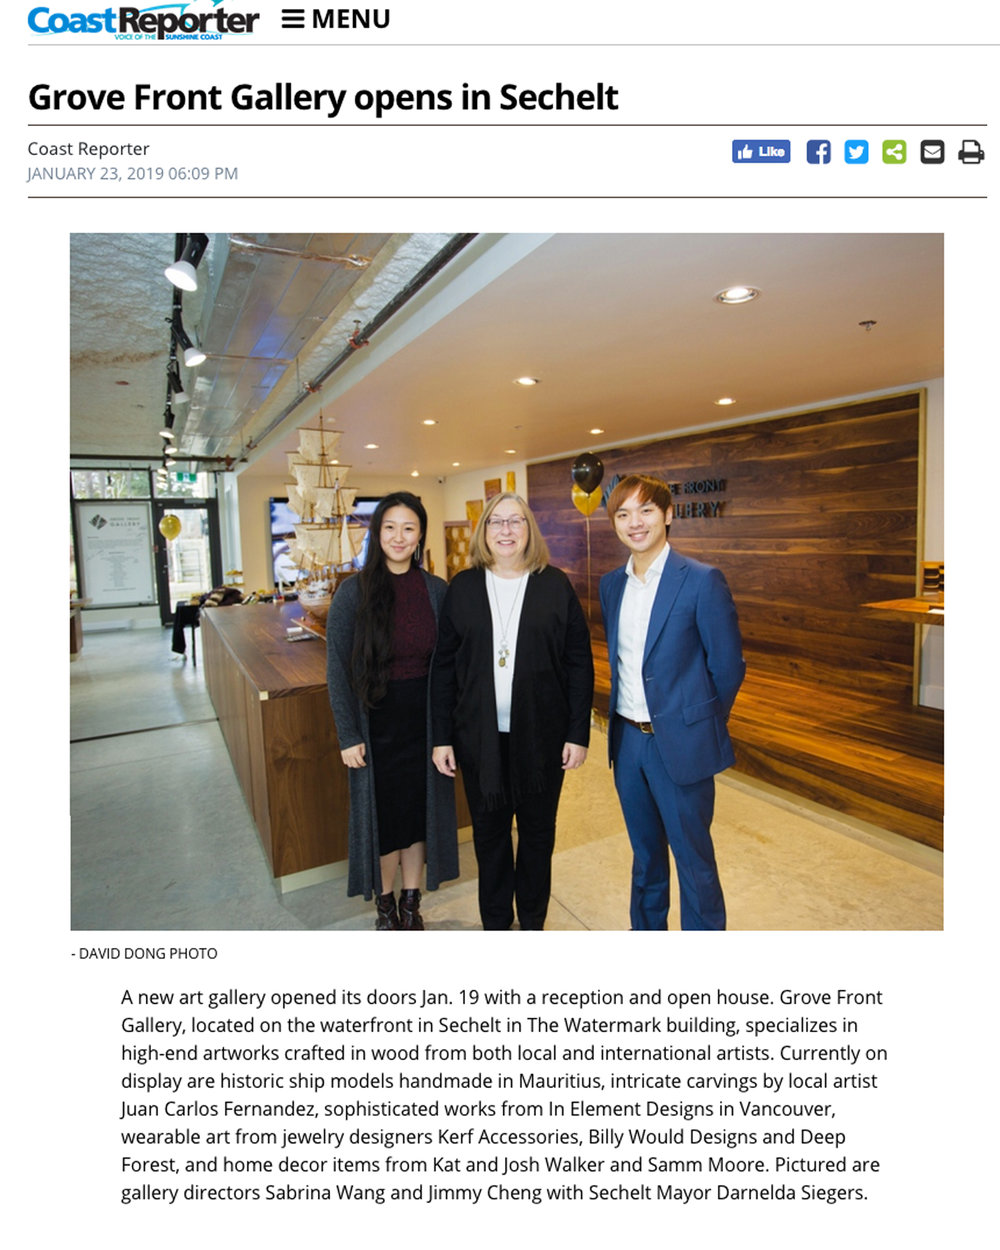 Article from the Coast Reporter: Credit to Heather Till  https://www.coastreporter.net/entertainment/arts-entertainment/grove-front-gallery-opens-in-sechelt-1.23610516